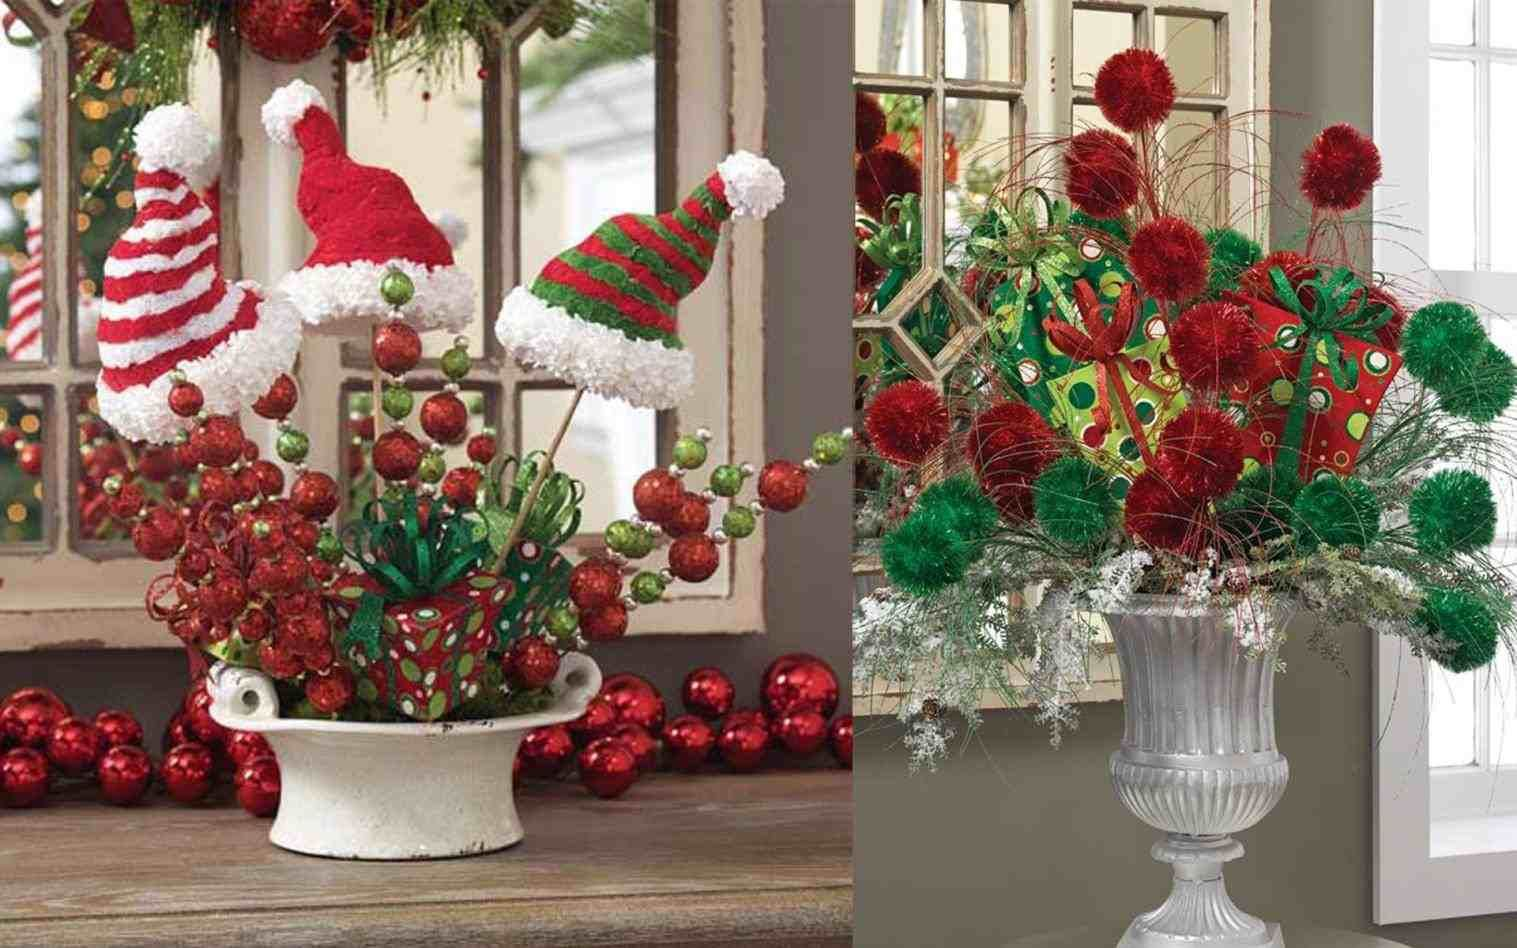 New post simple outdoor christmas decorations ideas visit bobayule